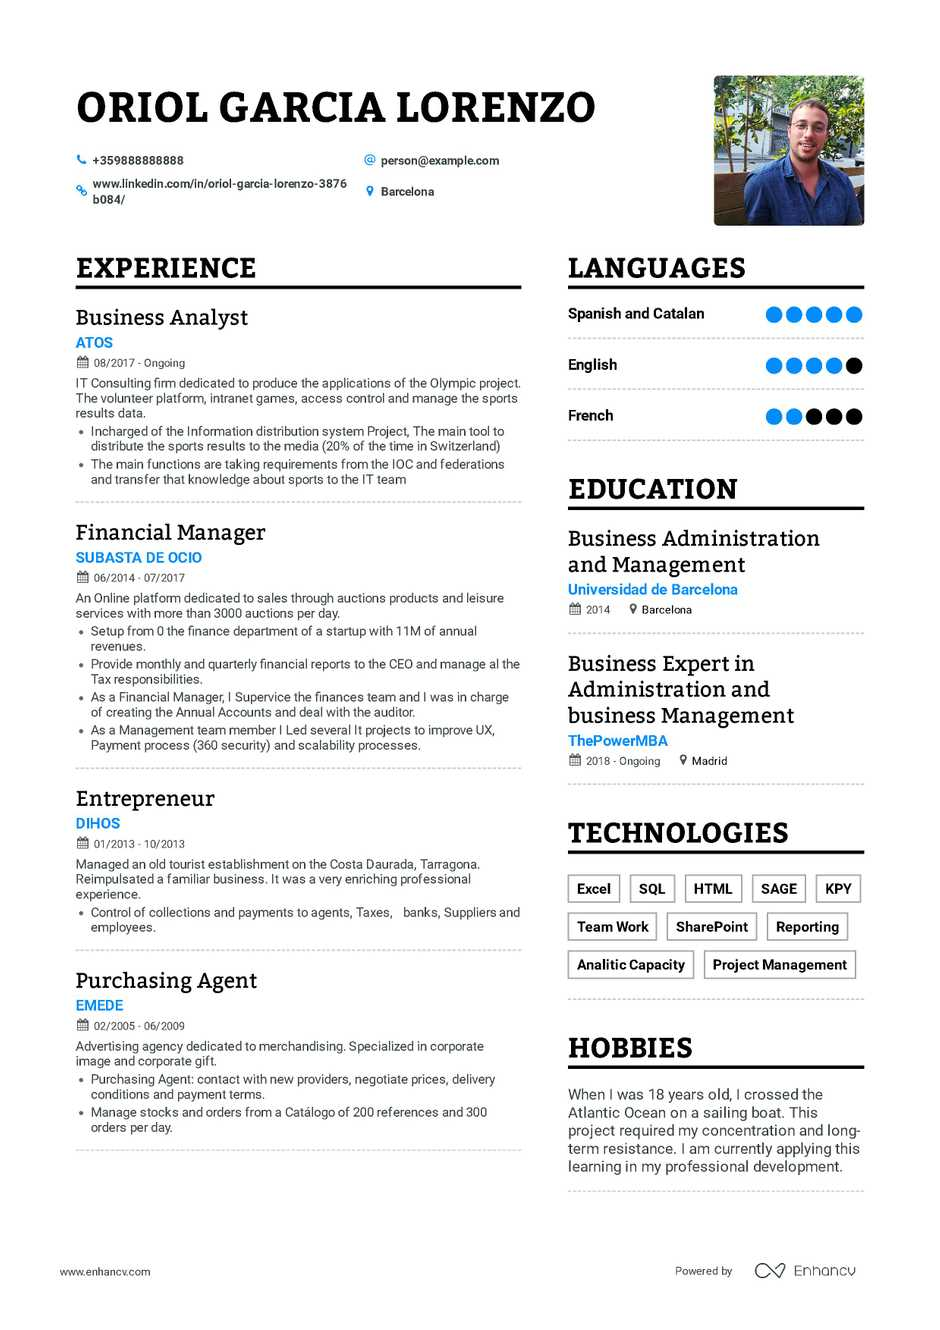 Example Of A Resume Business Analyst Resume example of a resume wikiresume.com